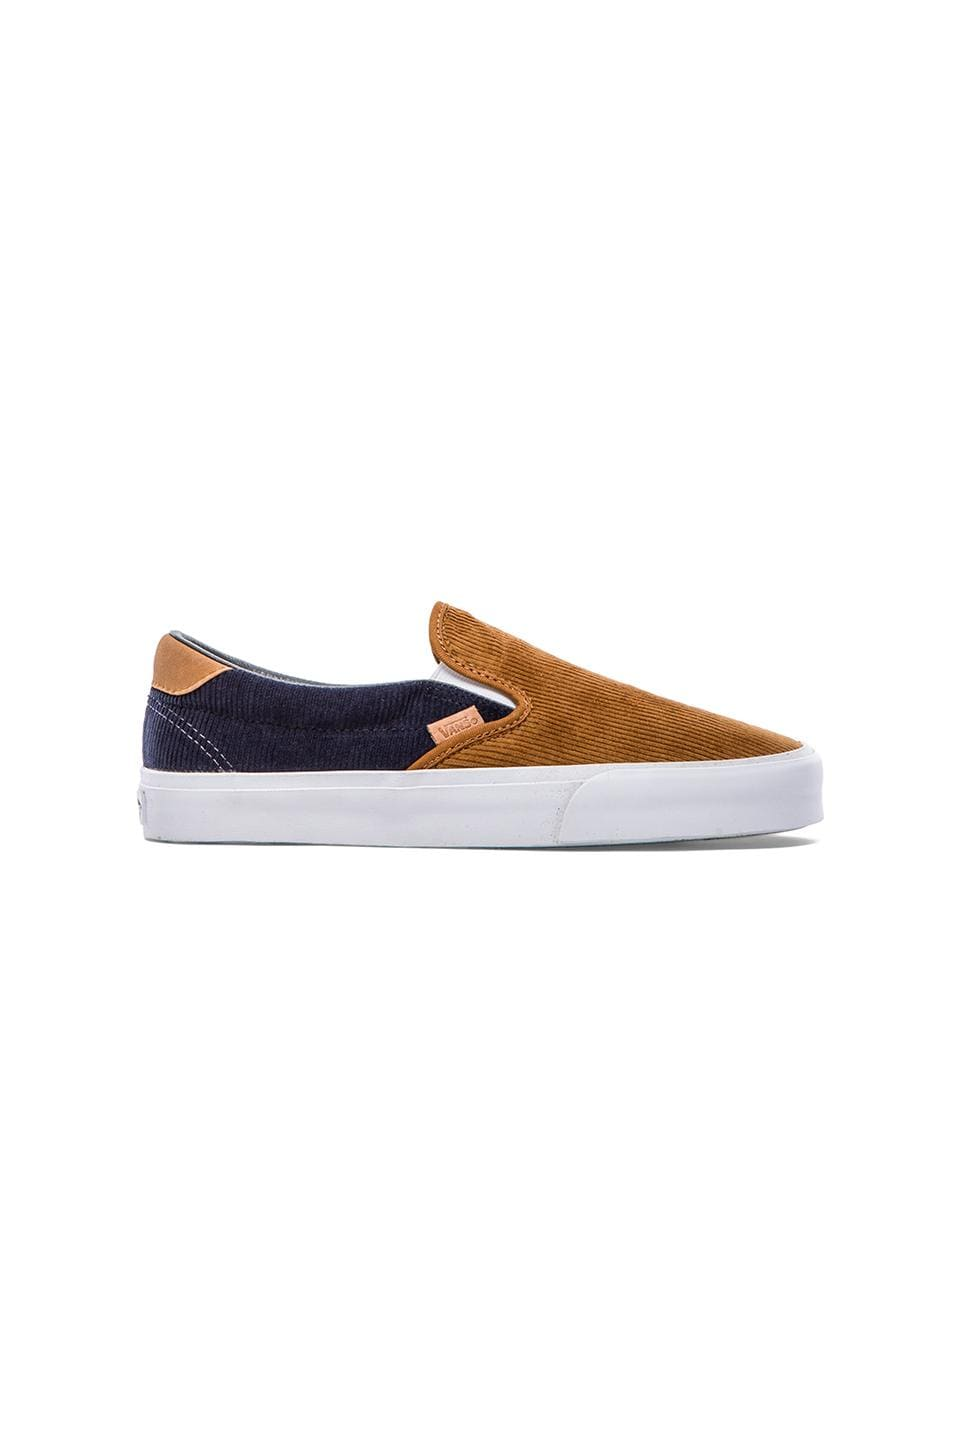 Vans California Slip On 59 Corduroy Mix Up in Cathay Spice